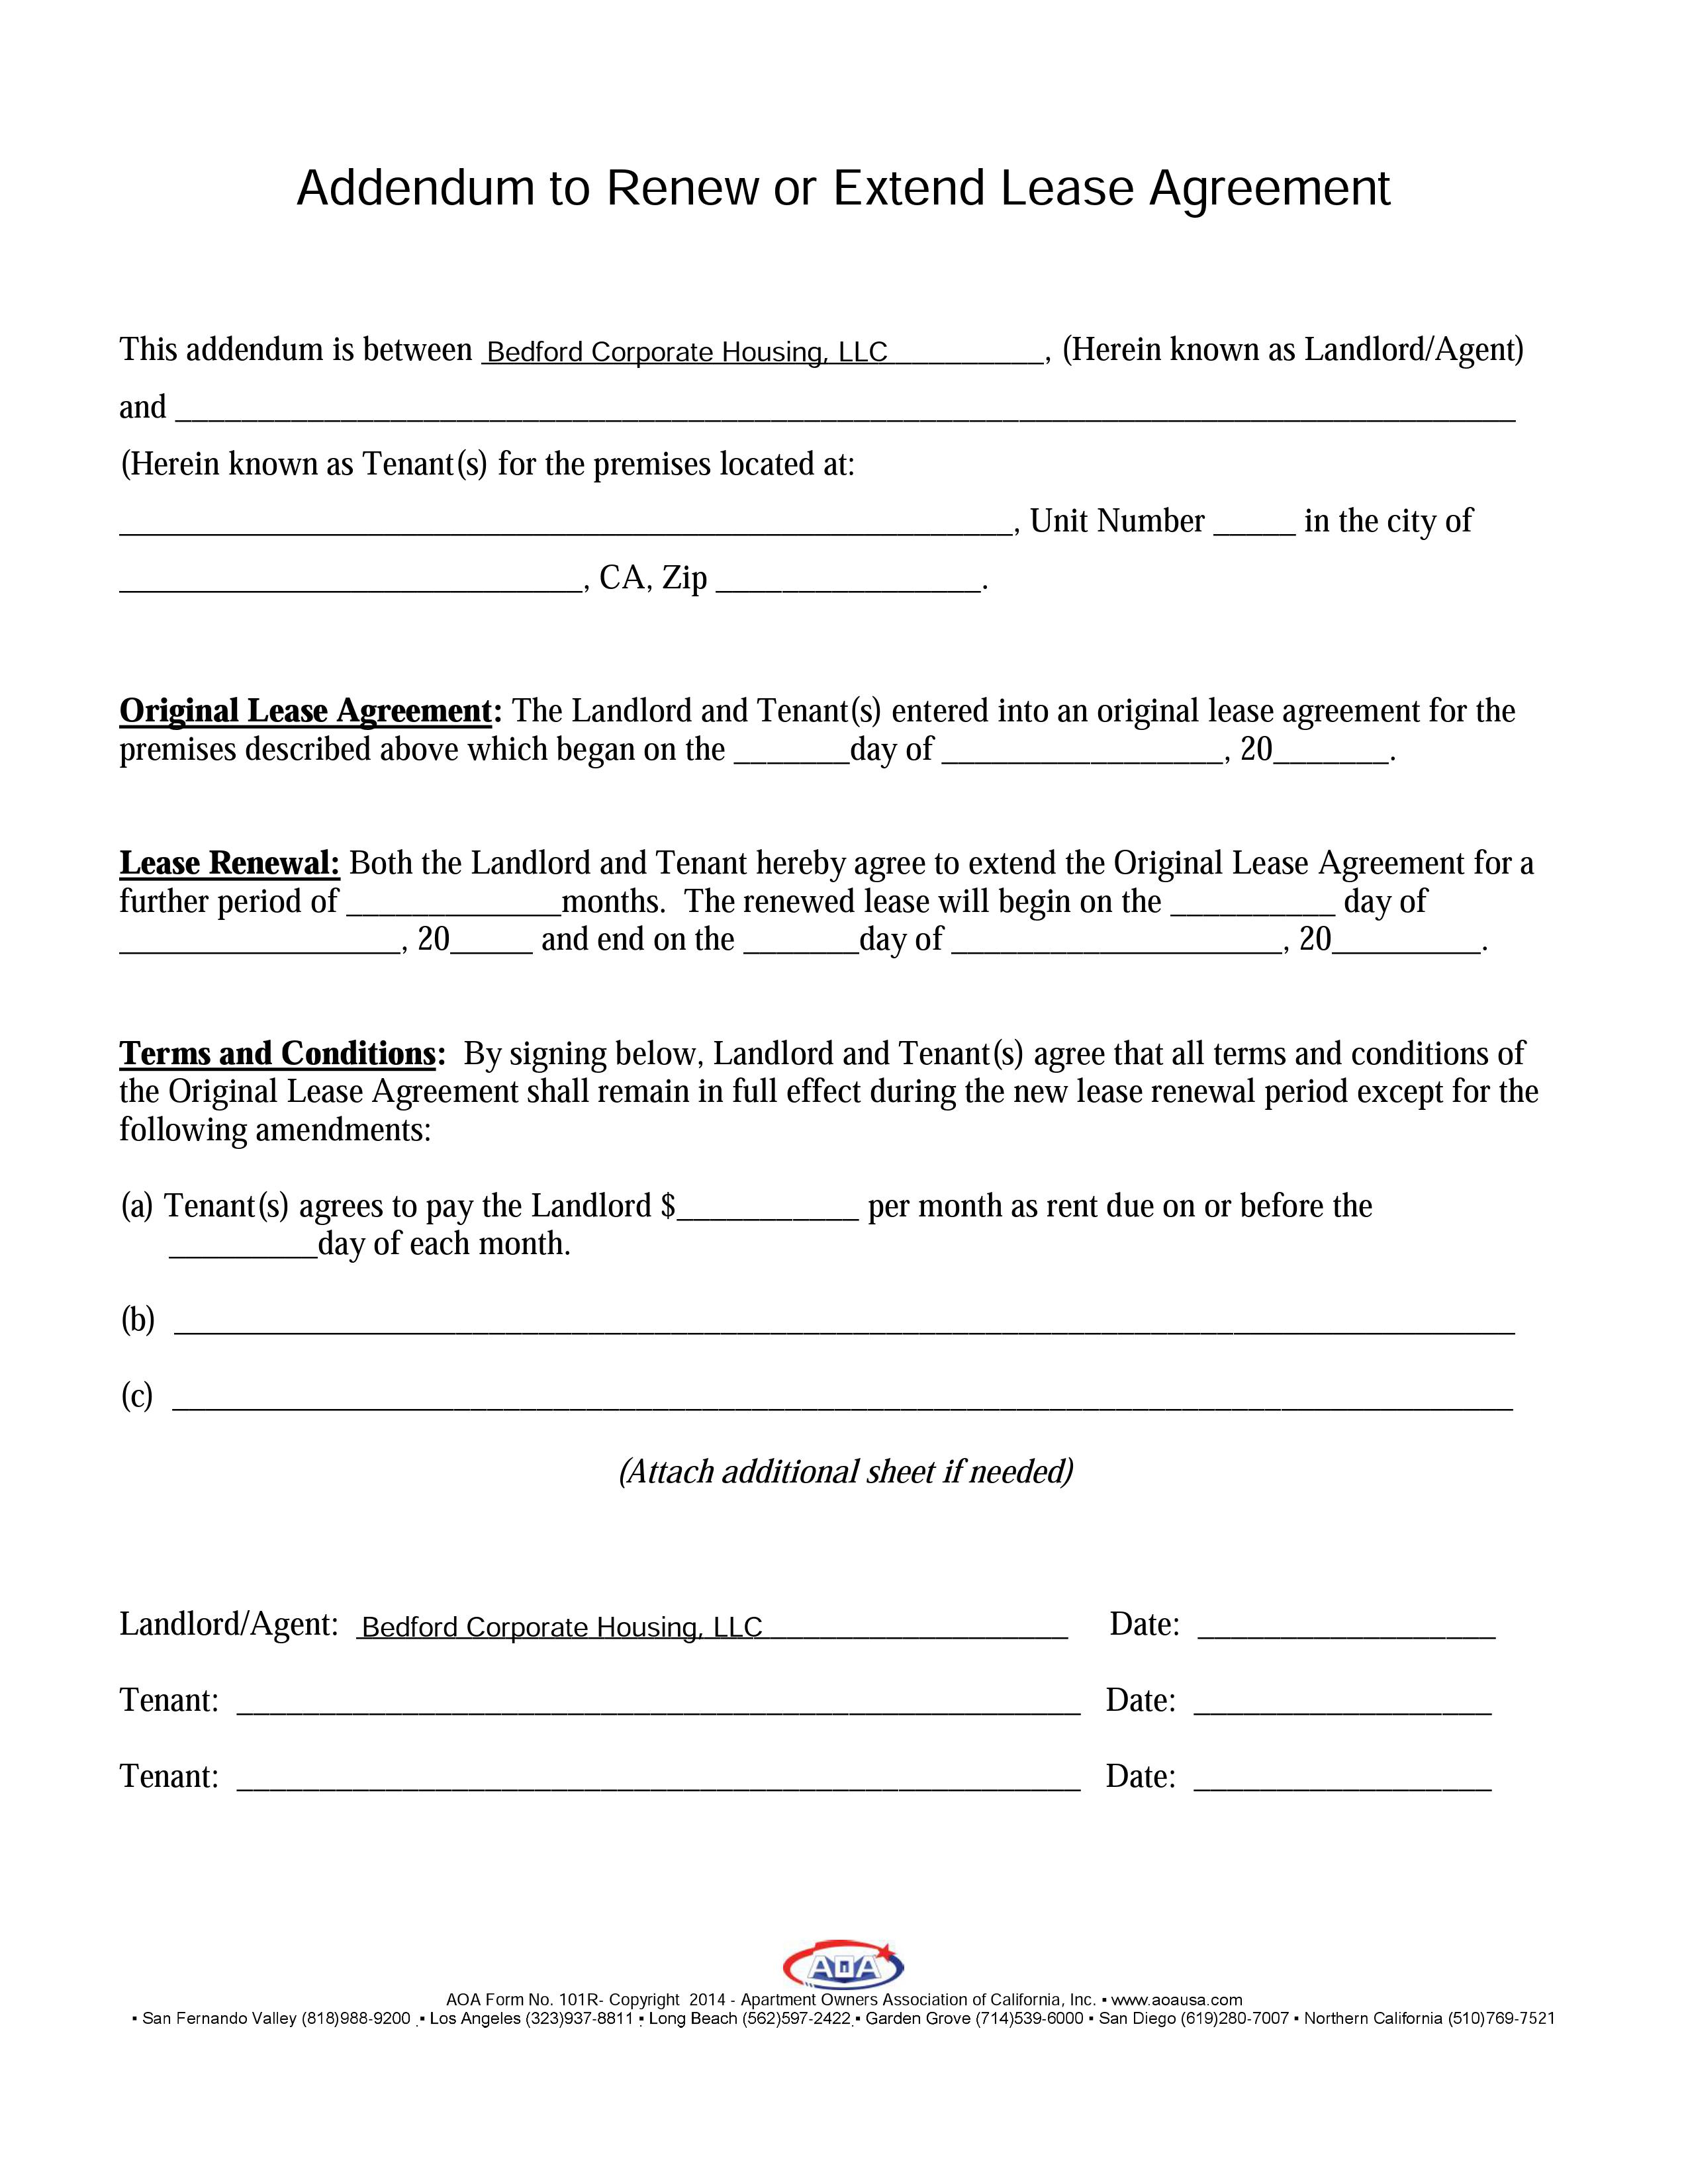 Sample Lease Agreements Amp Documents Corporate Housing In